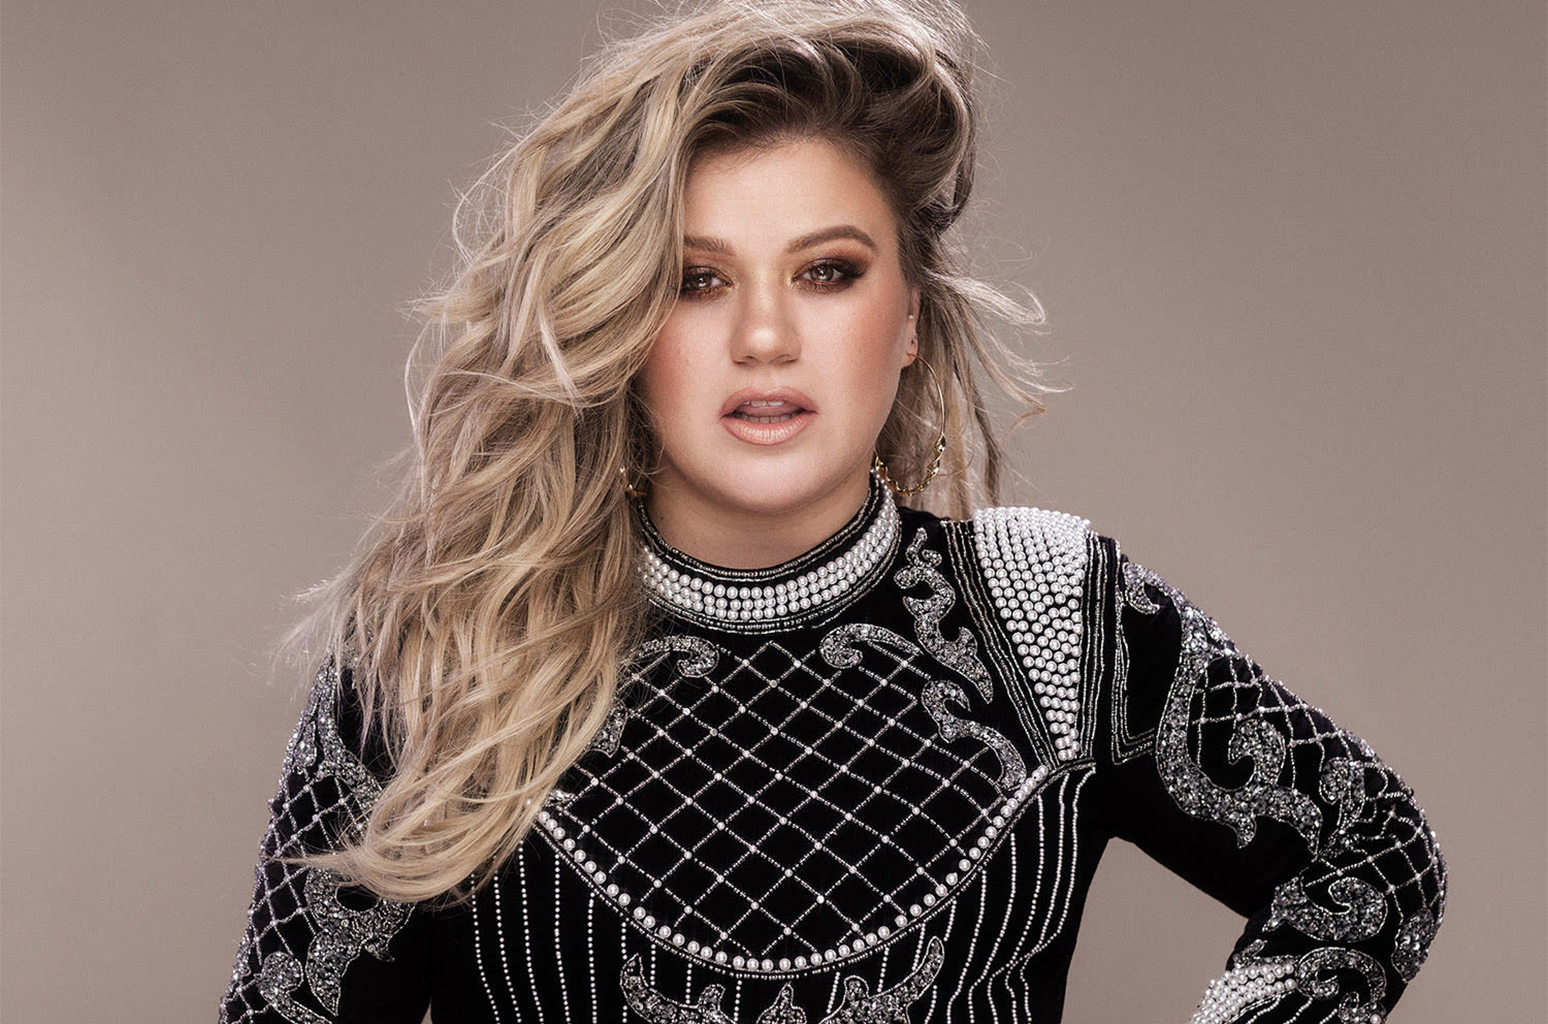 Kelly Clarkson Shows Us 'The Meaning of Life' with New Album